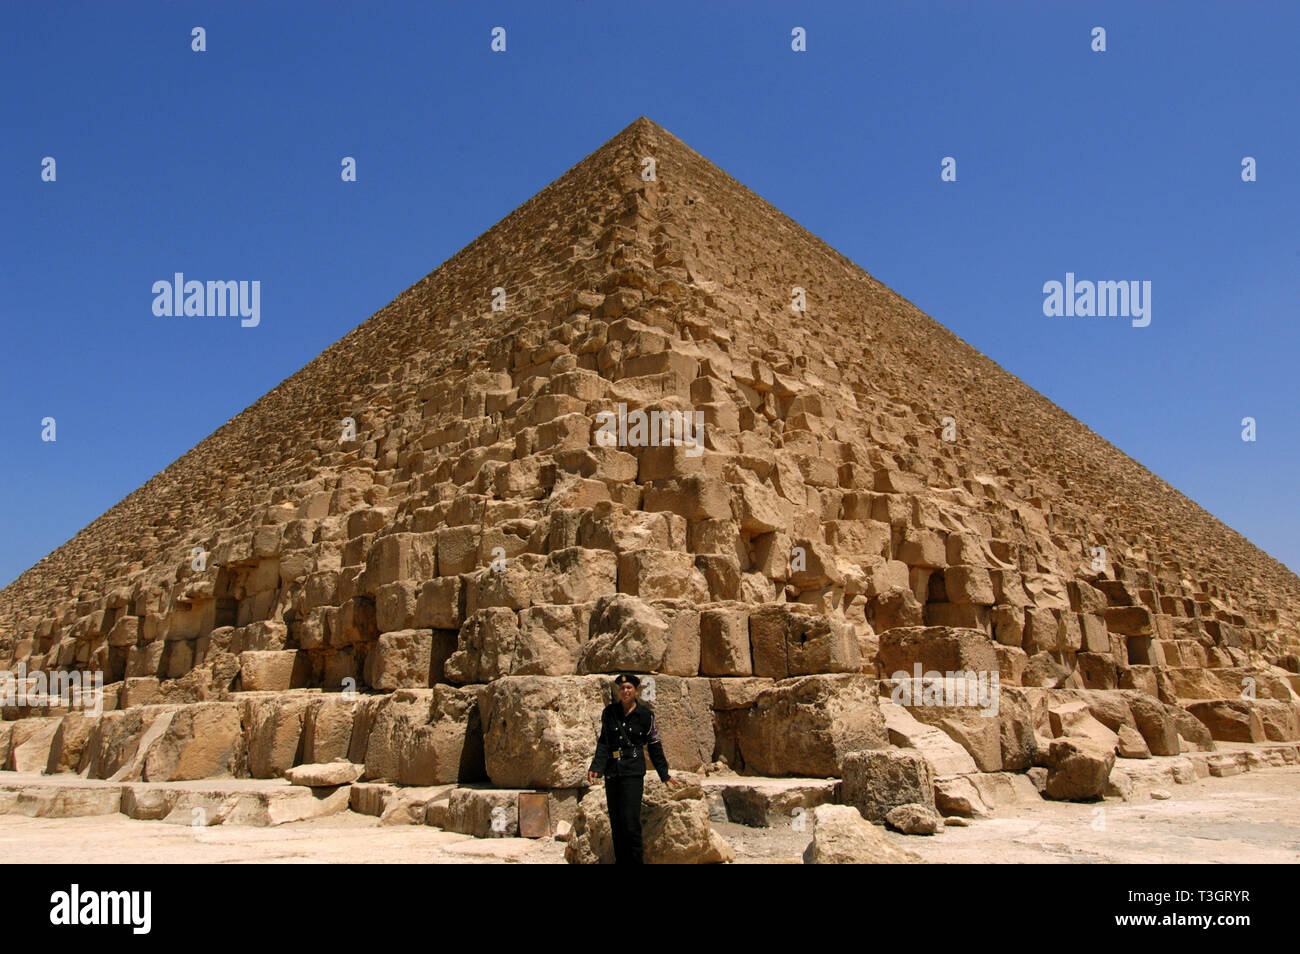 Egyptian policeman standing in front of a pyramid in Cairo, Egypt. - Stock Image